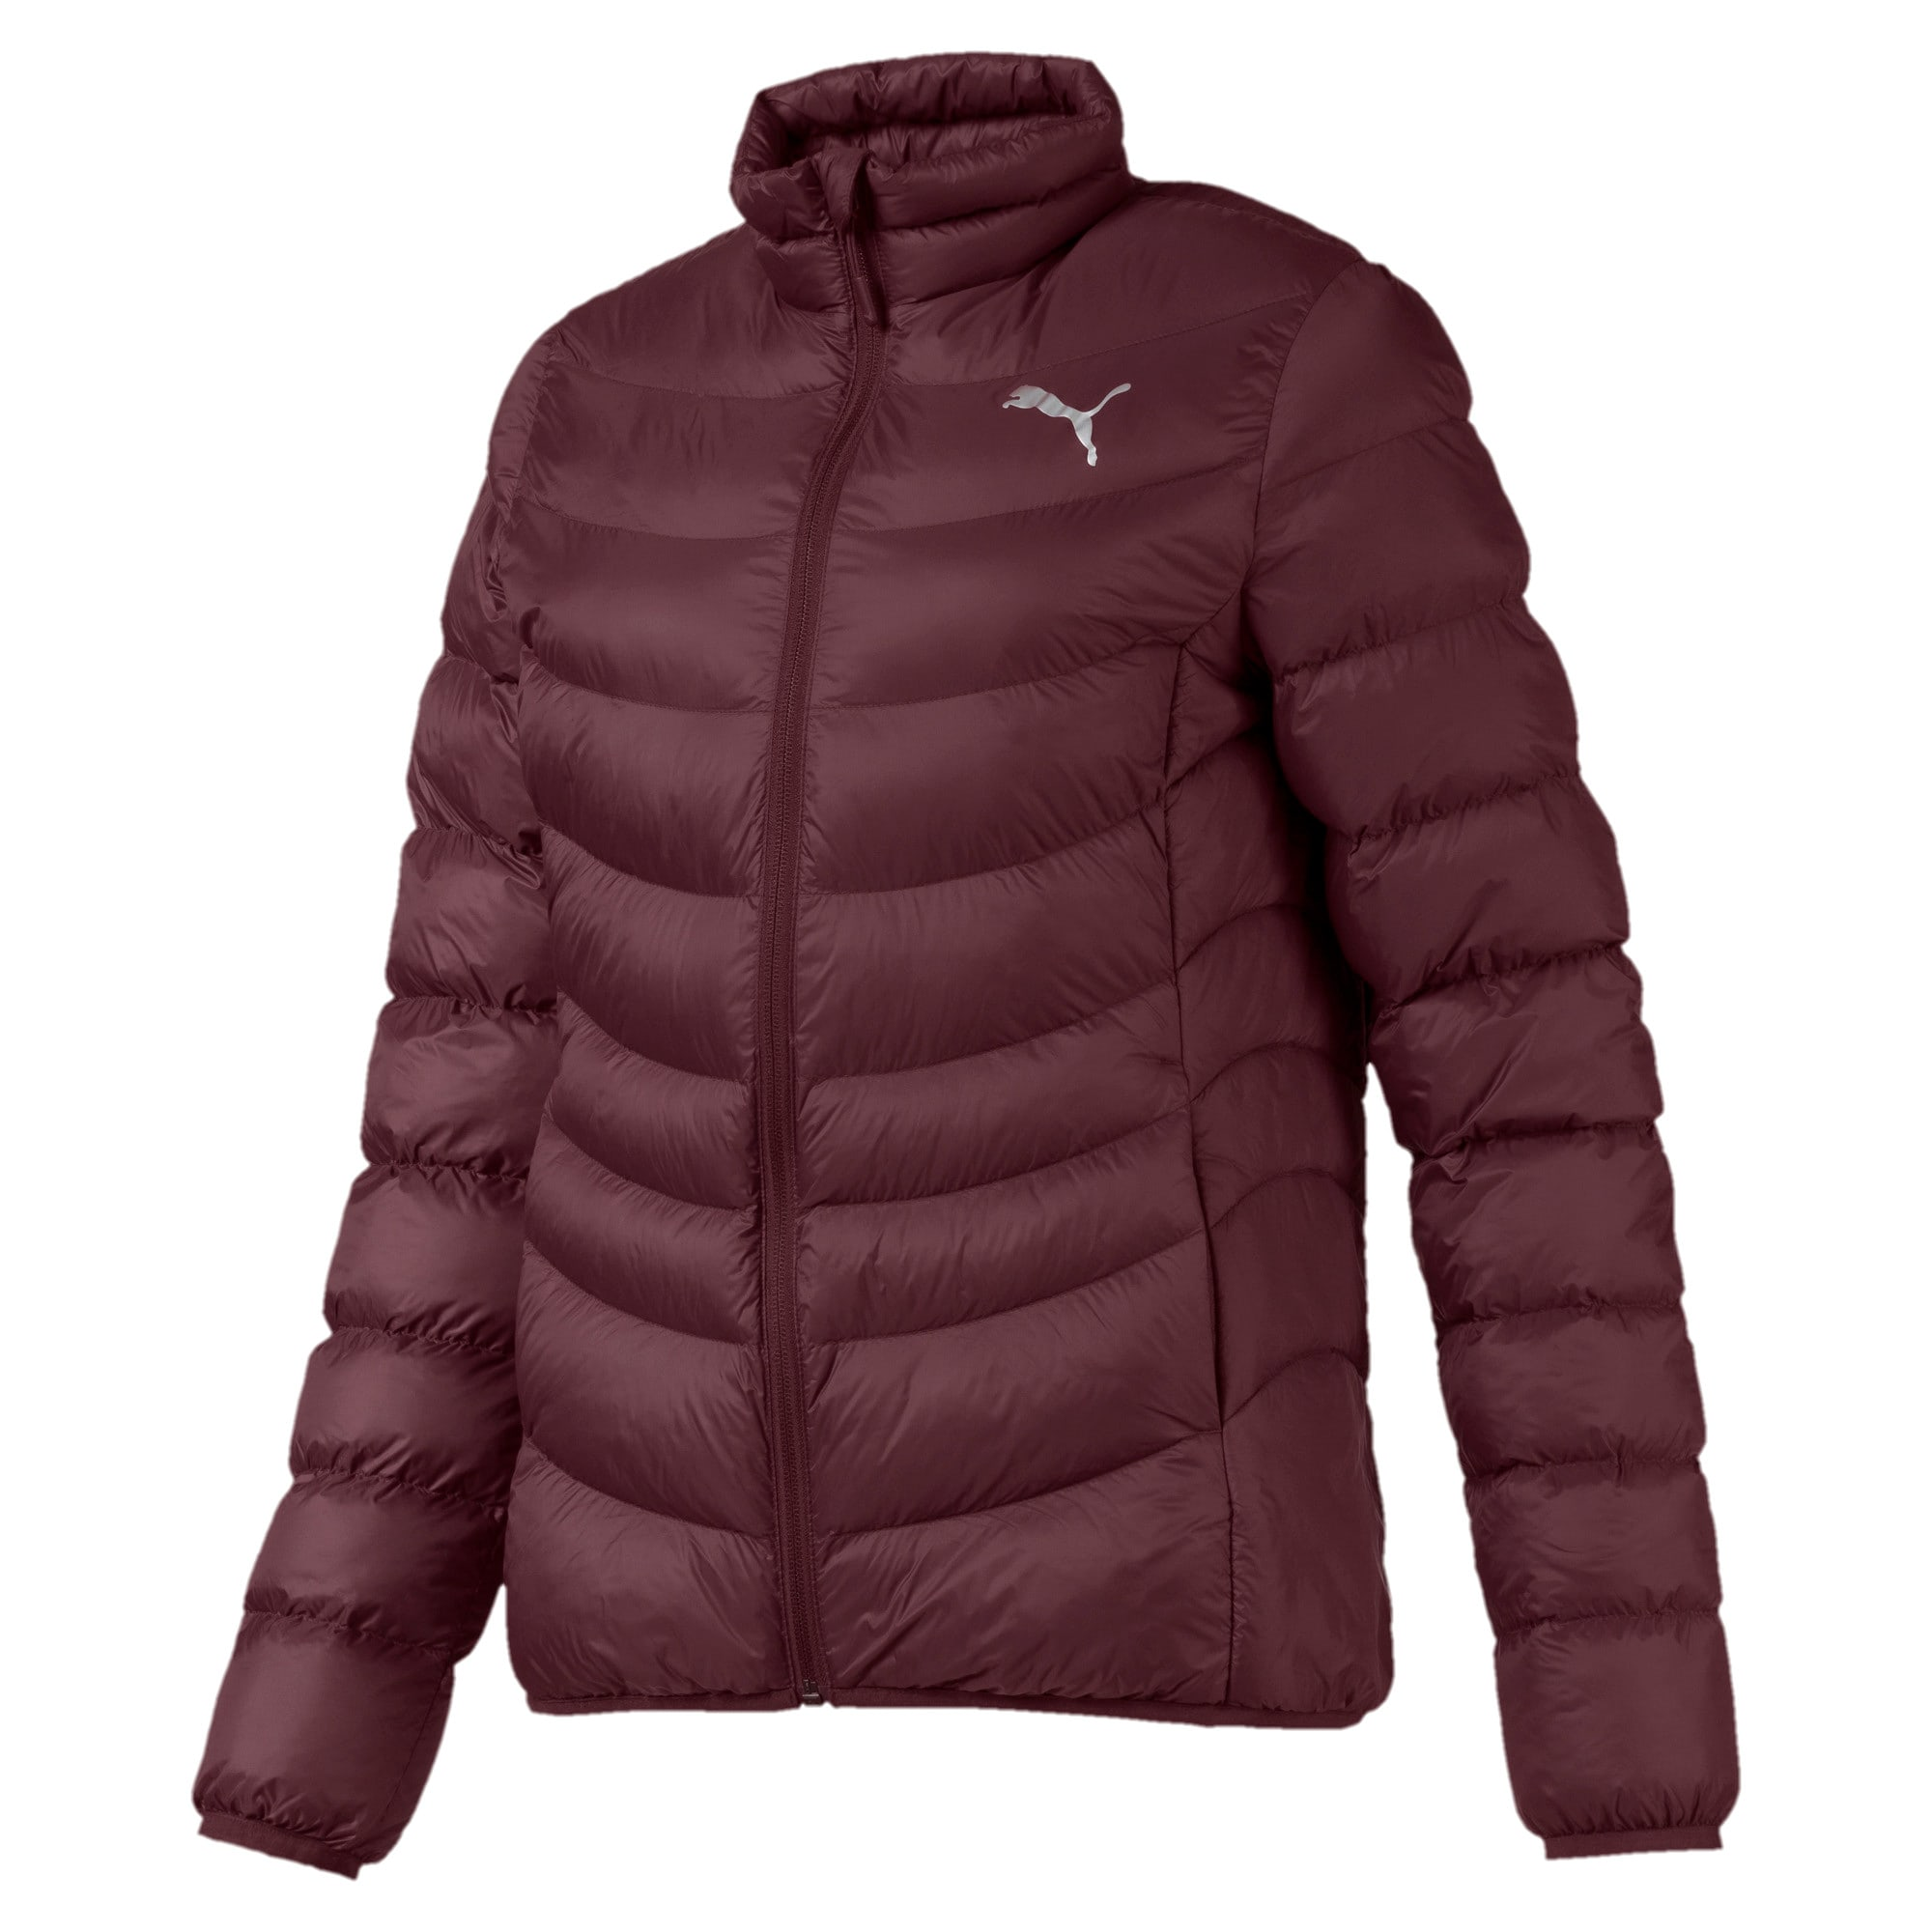 Thumbnail 4 of Ultralight warmCELL Damen Jacke, Vineyard Wine, medium